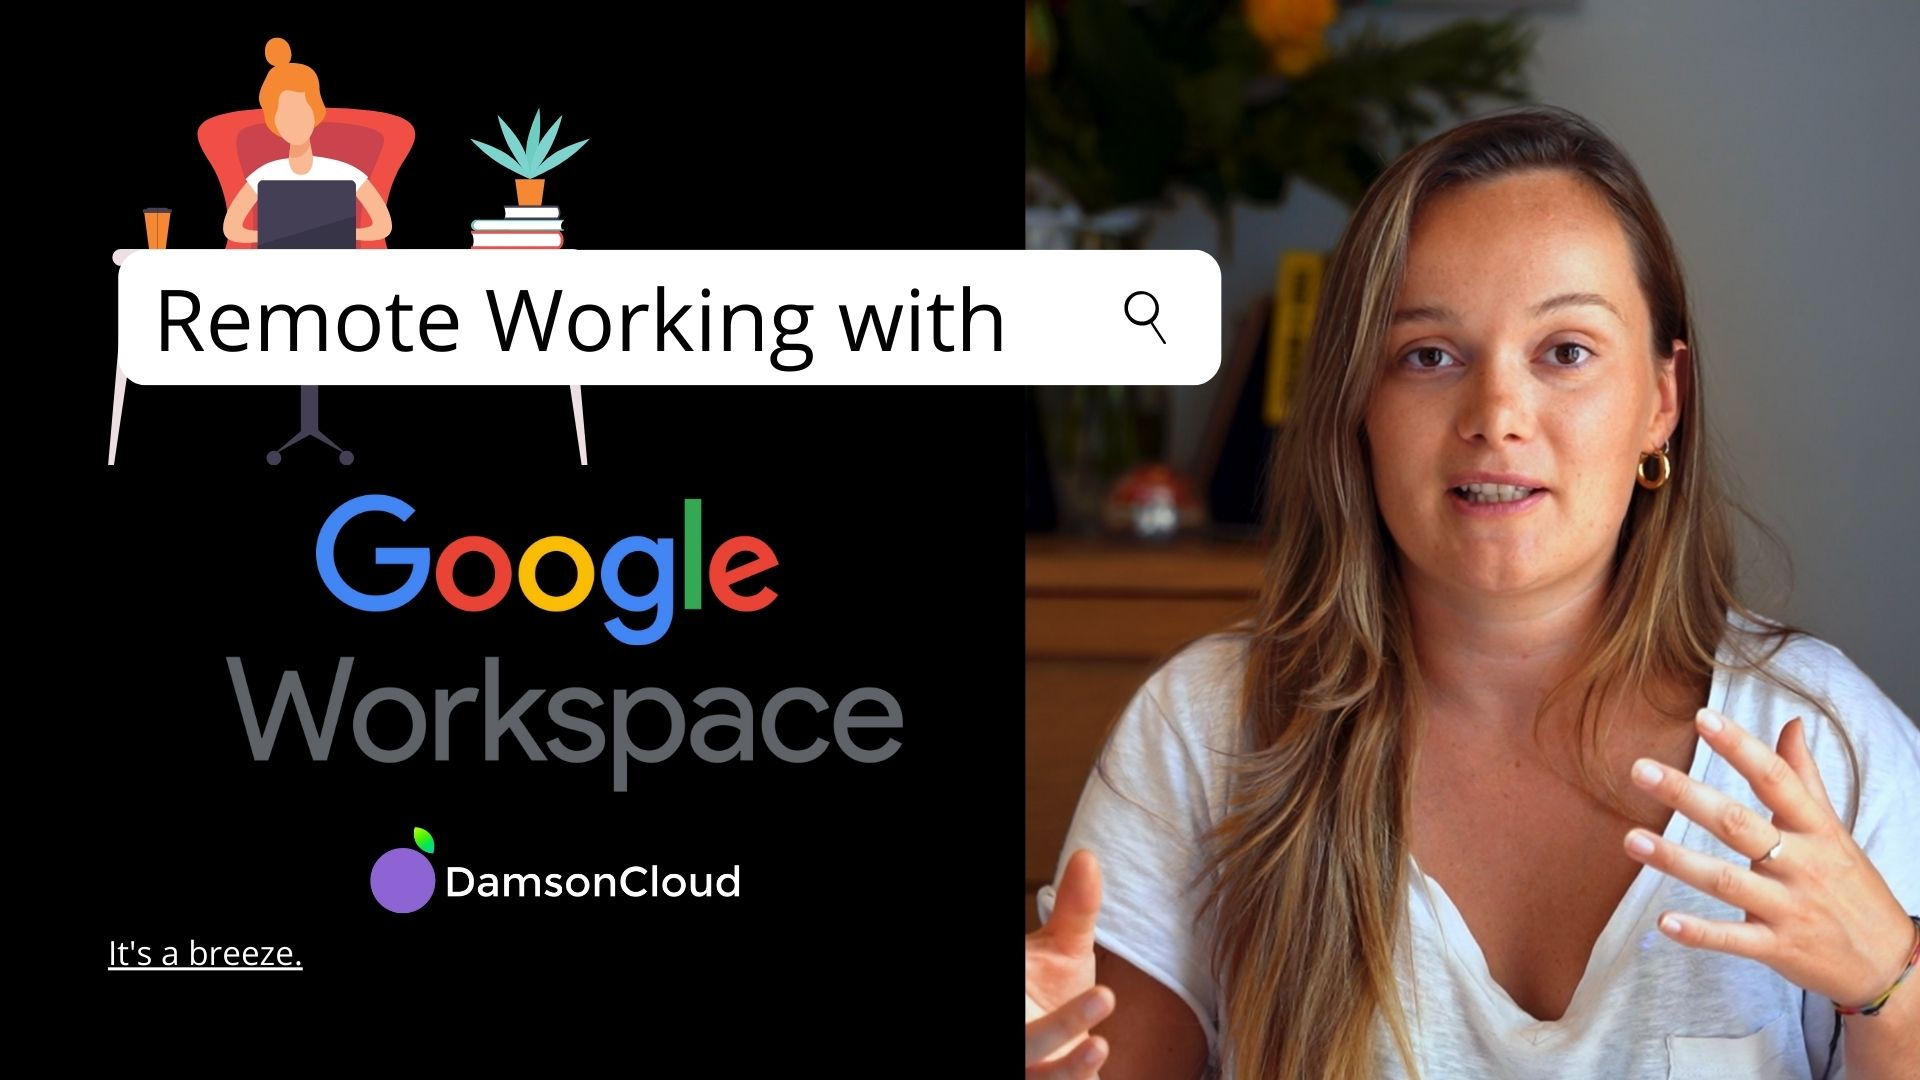 Remote Working with Google Workspace